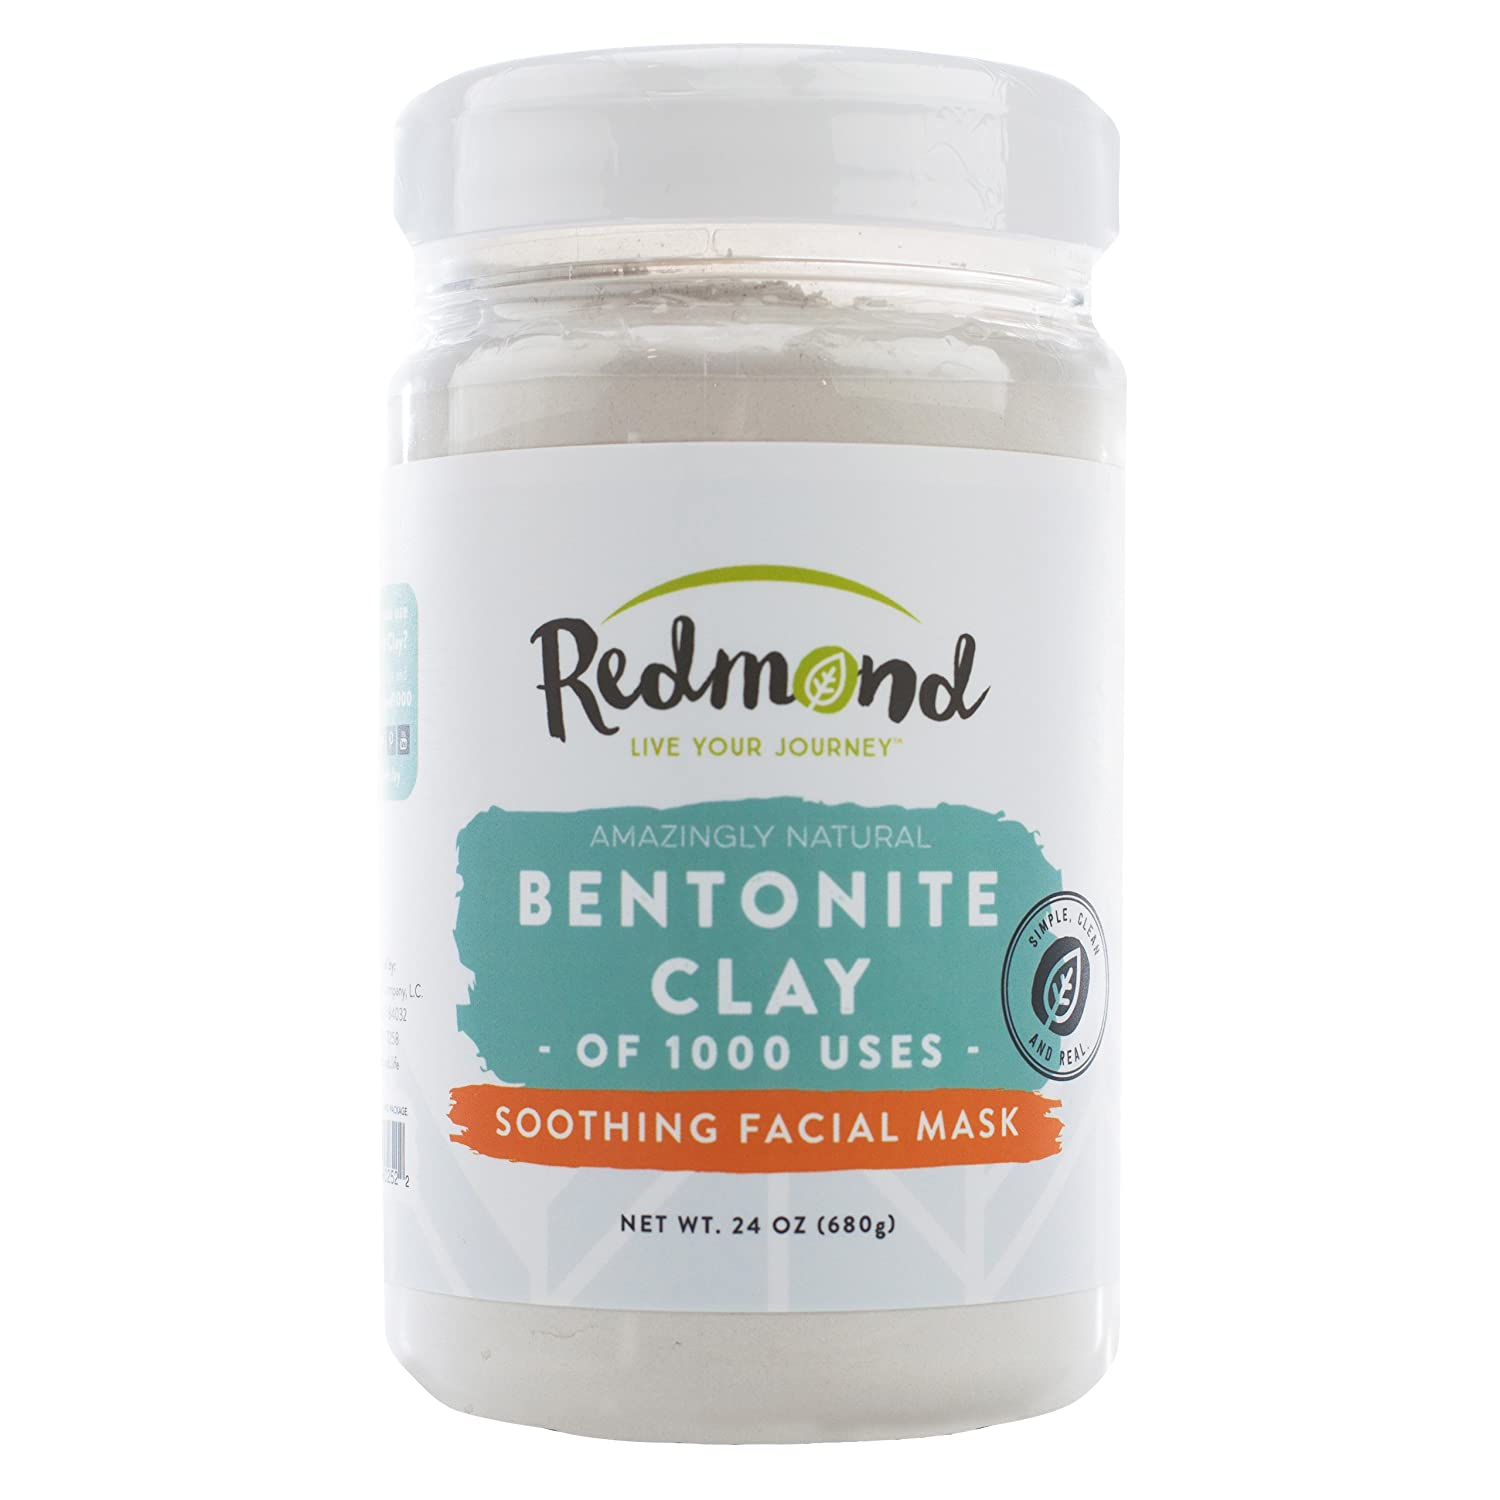 Redmond Clay - Bentonite Clay of 1000 Uses, Soothing Facial Mask 24 Ounce SETAF RC24